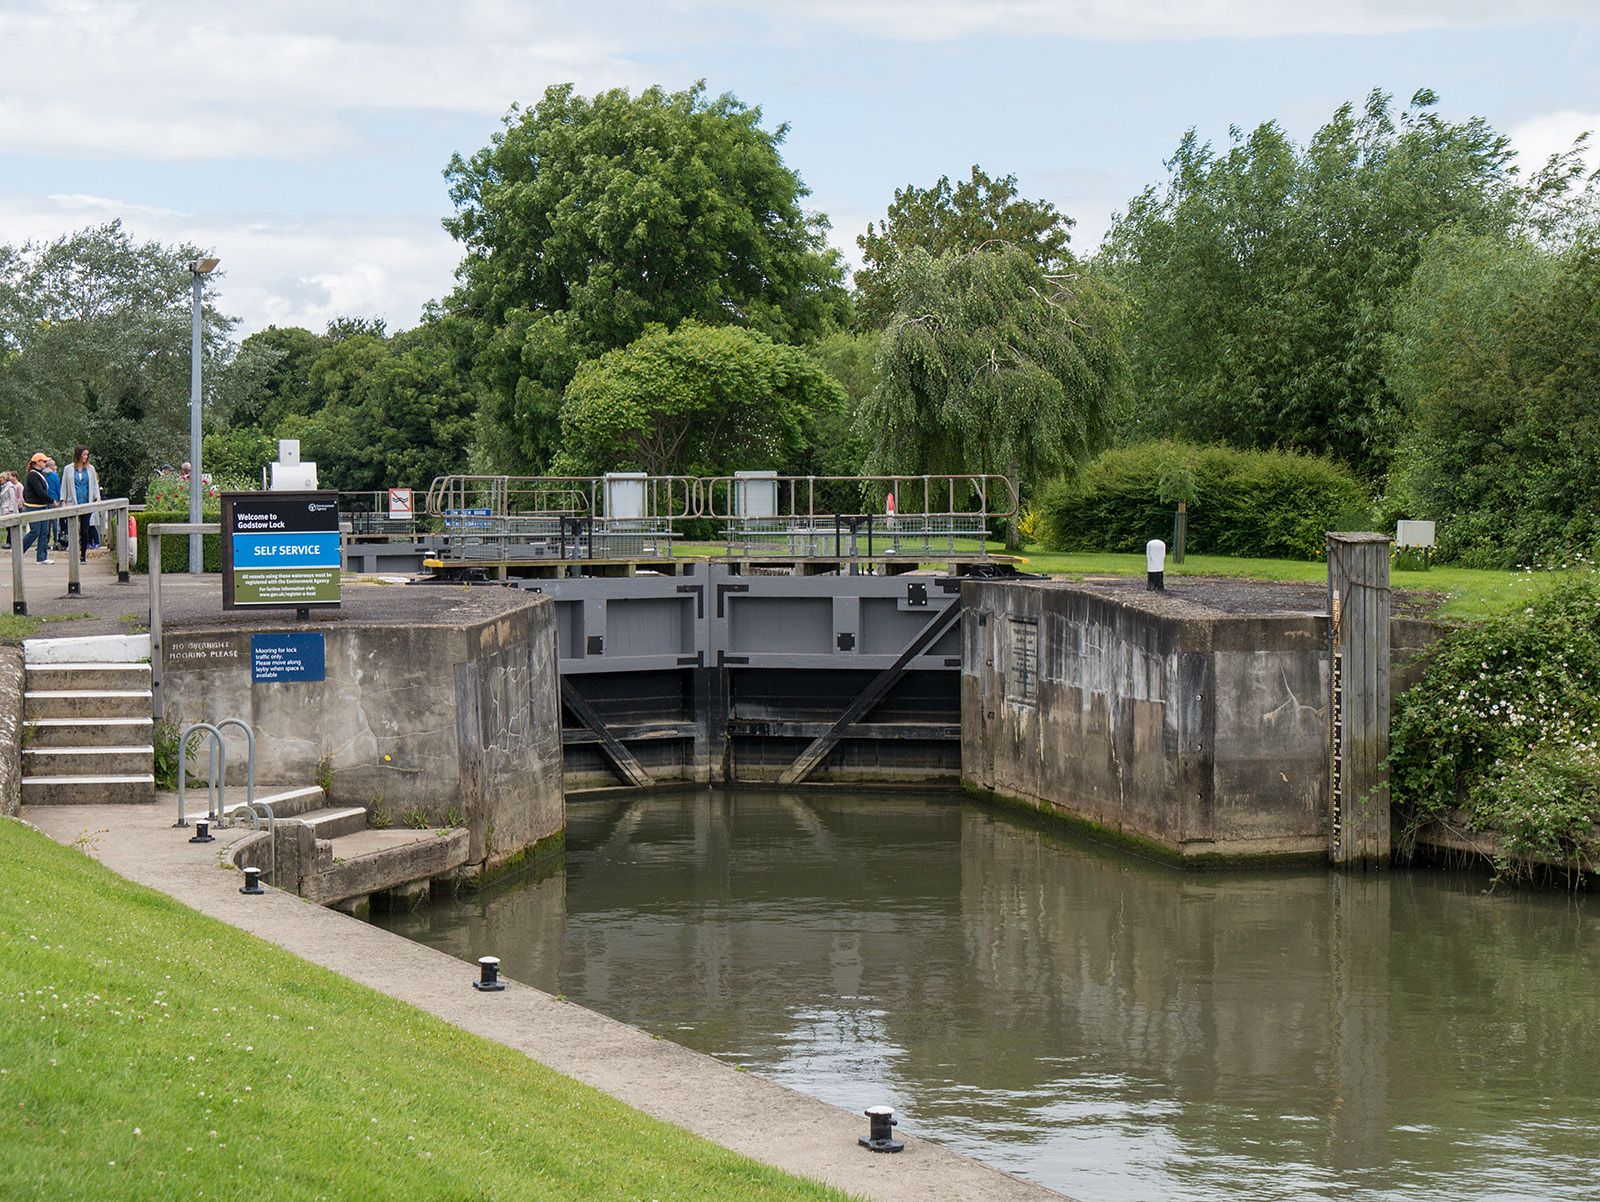 Approaching Godstow Lock